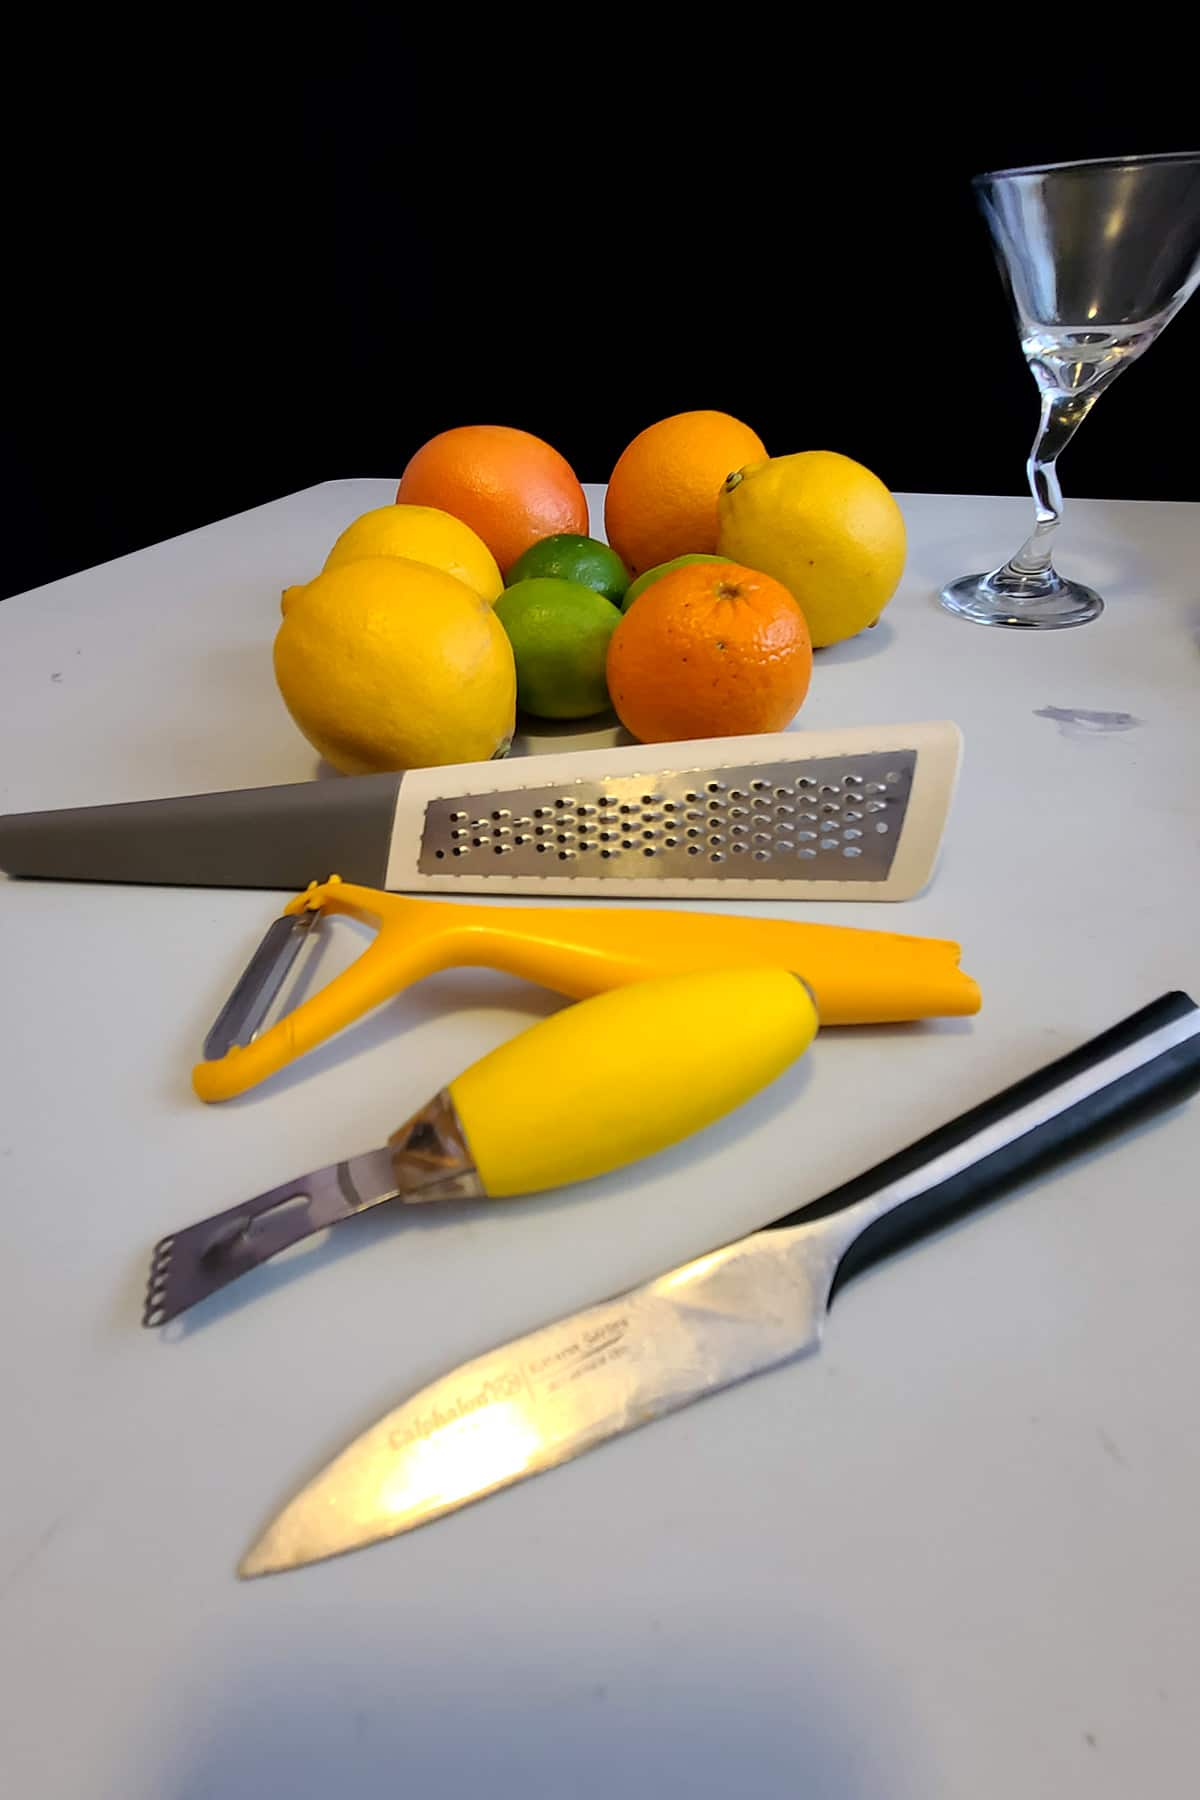 A grouping of lemons, limes, and oranges on a white cutting board. A zester, peeler, channel knife, and paring knife are in the foreground.